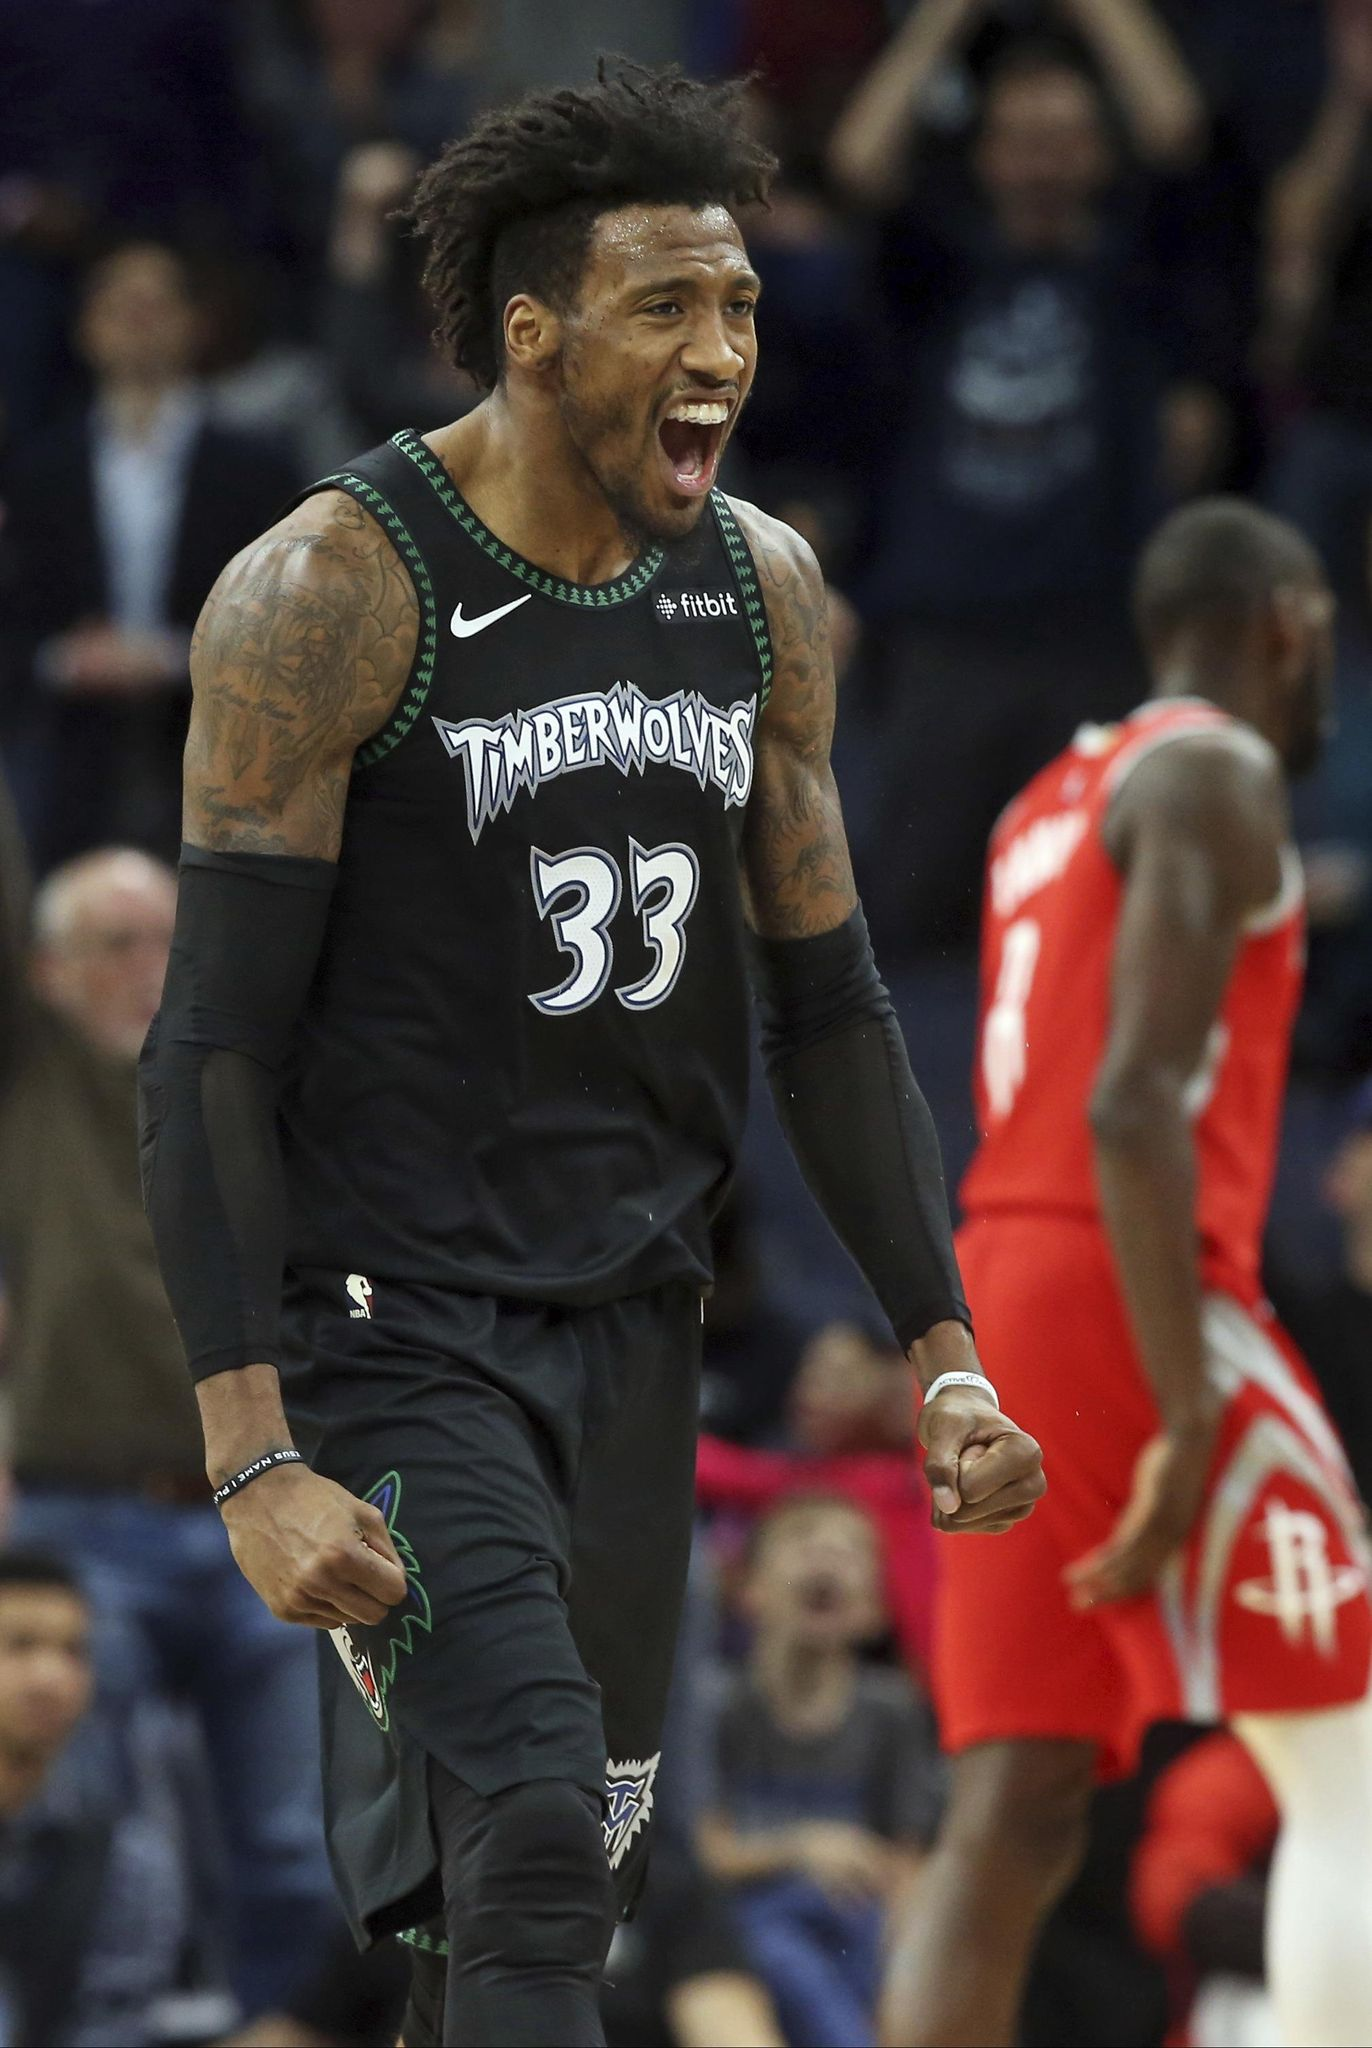 The Timberwolves, finally, are getting it done on defense